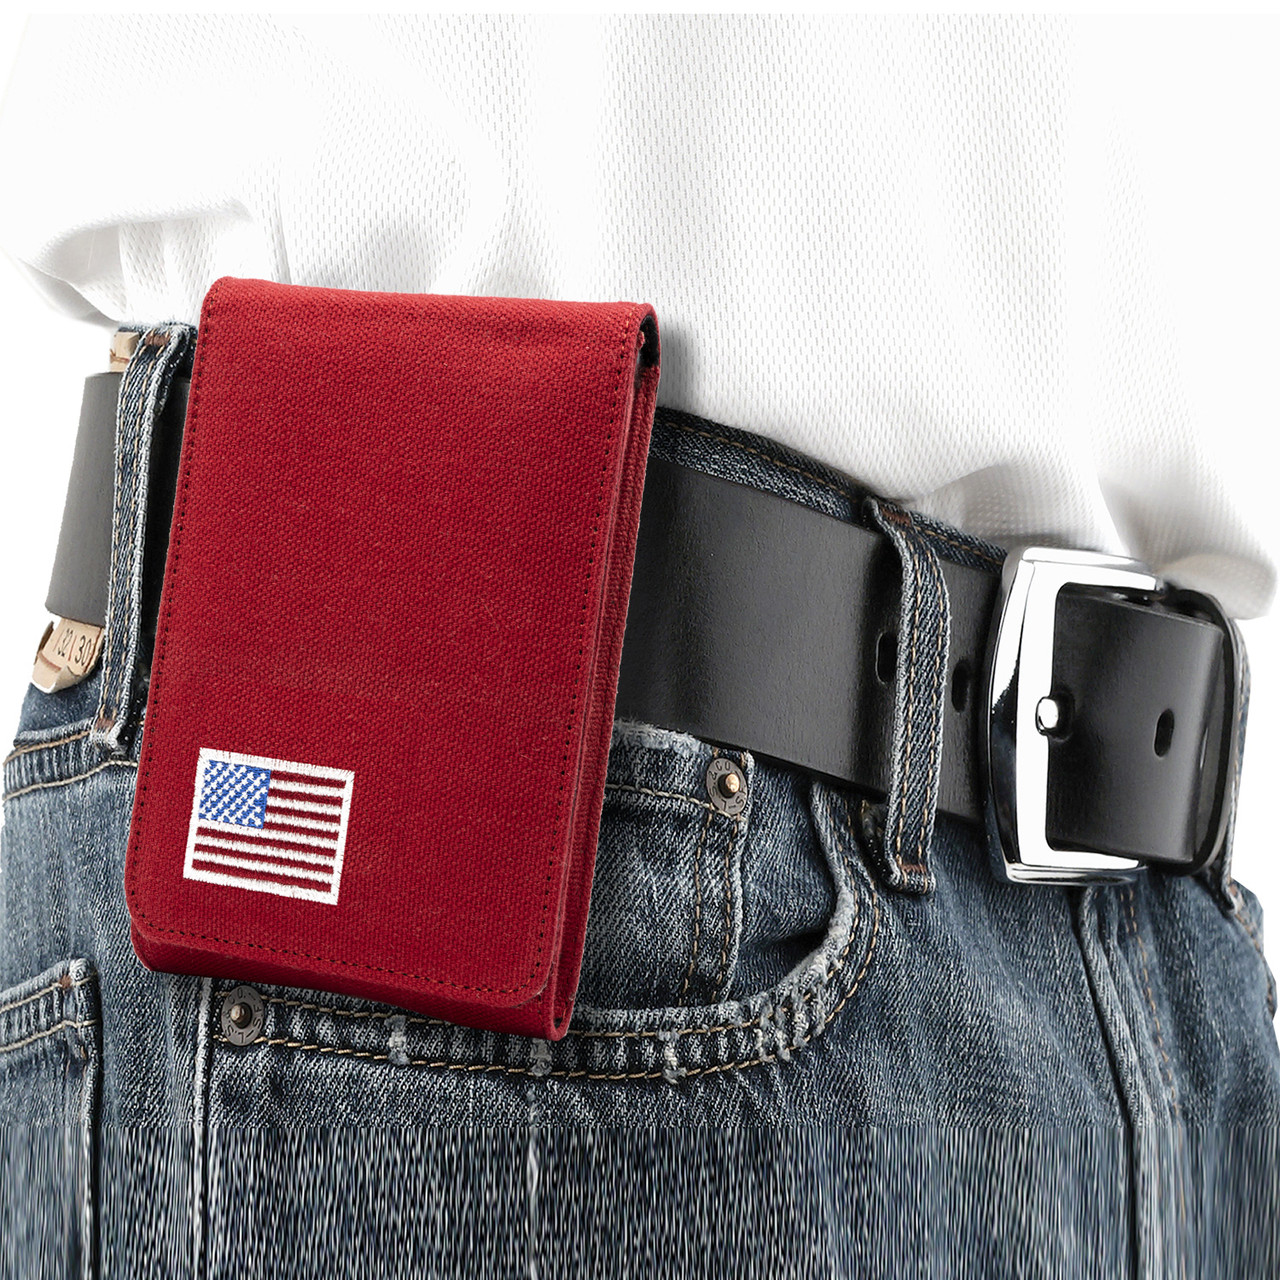 HK VP40 Red Canvas Flag Series Holster